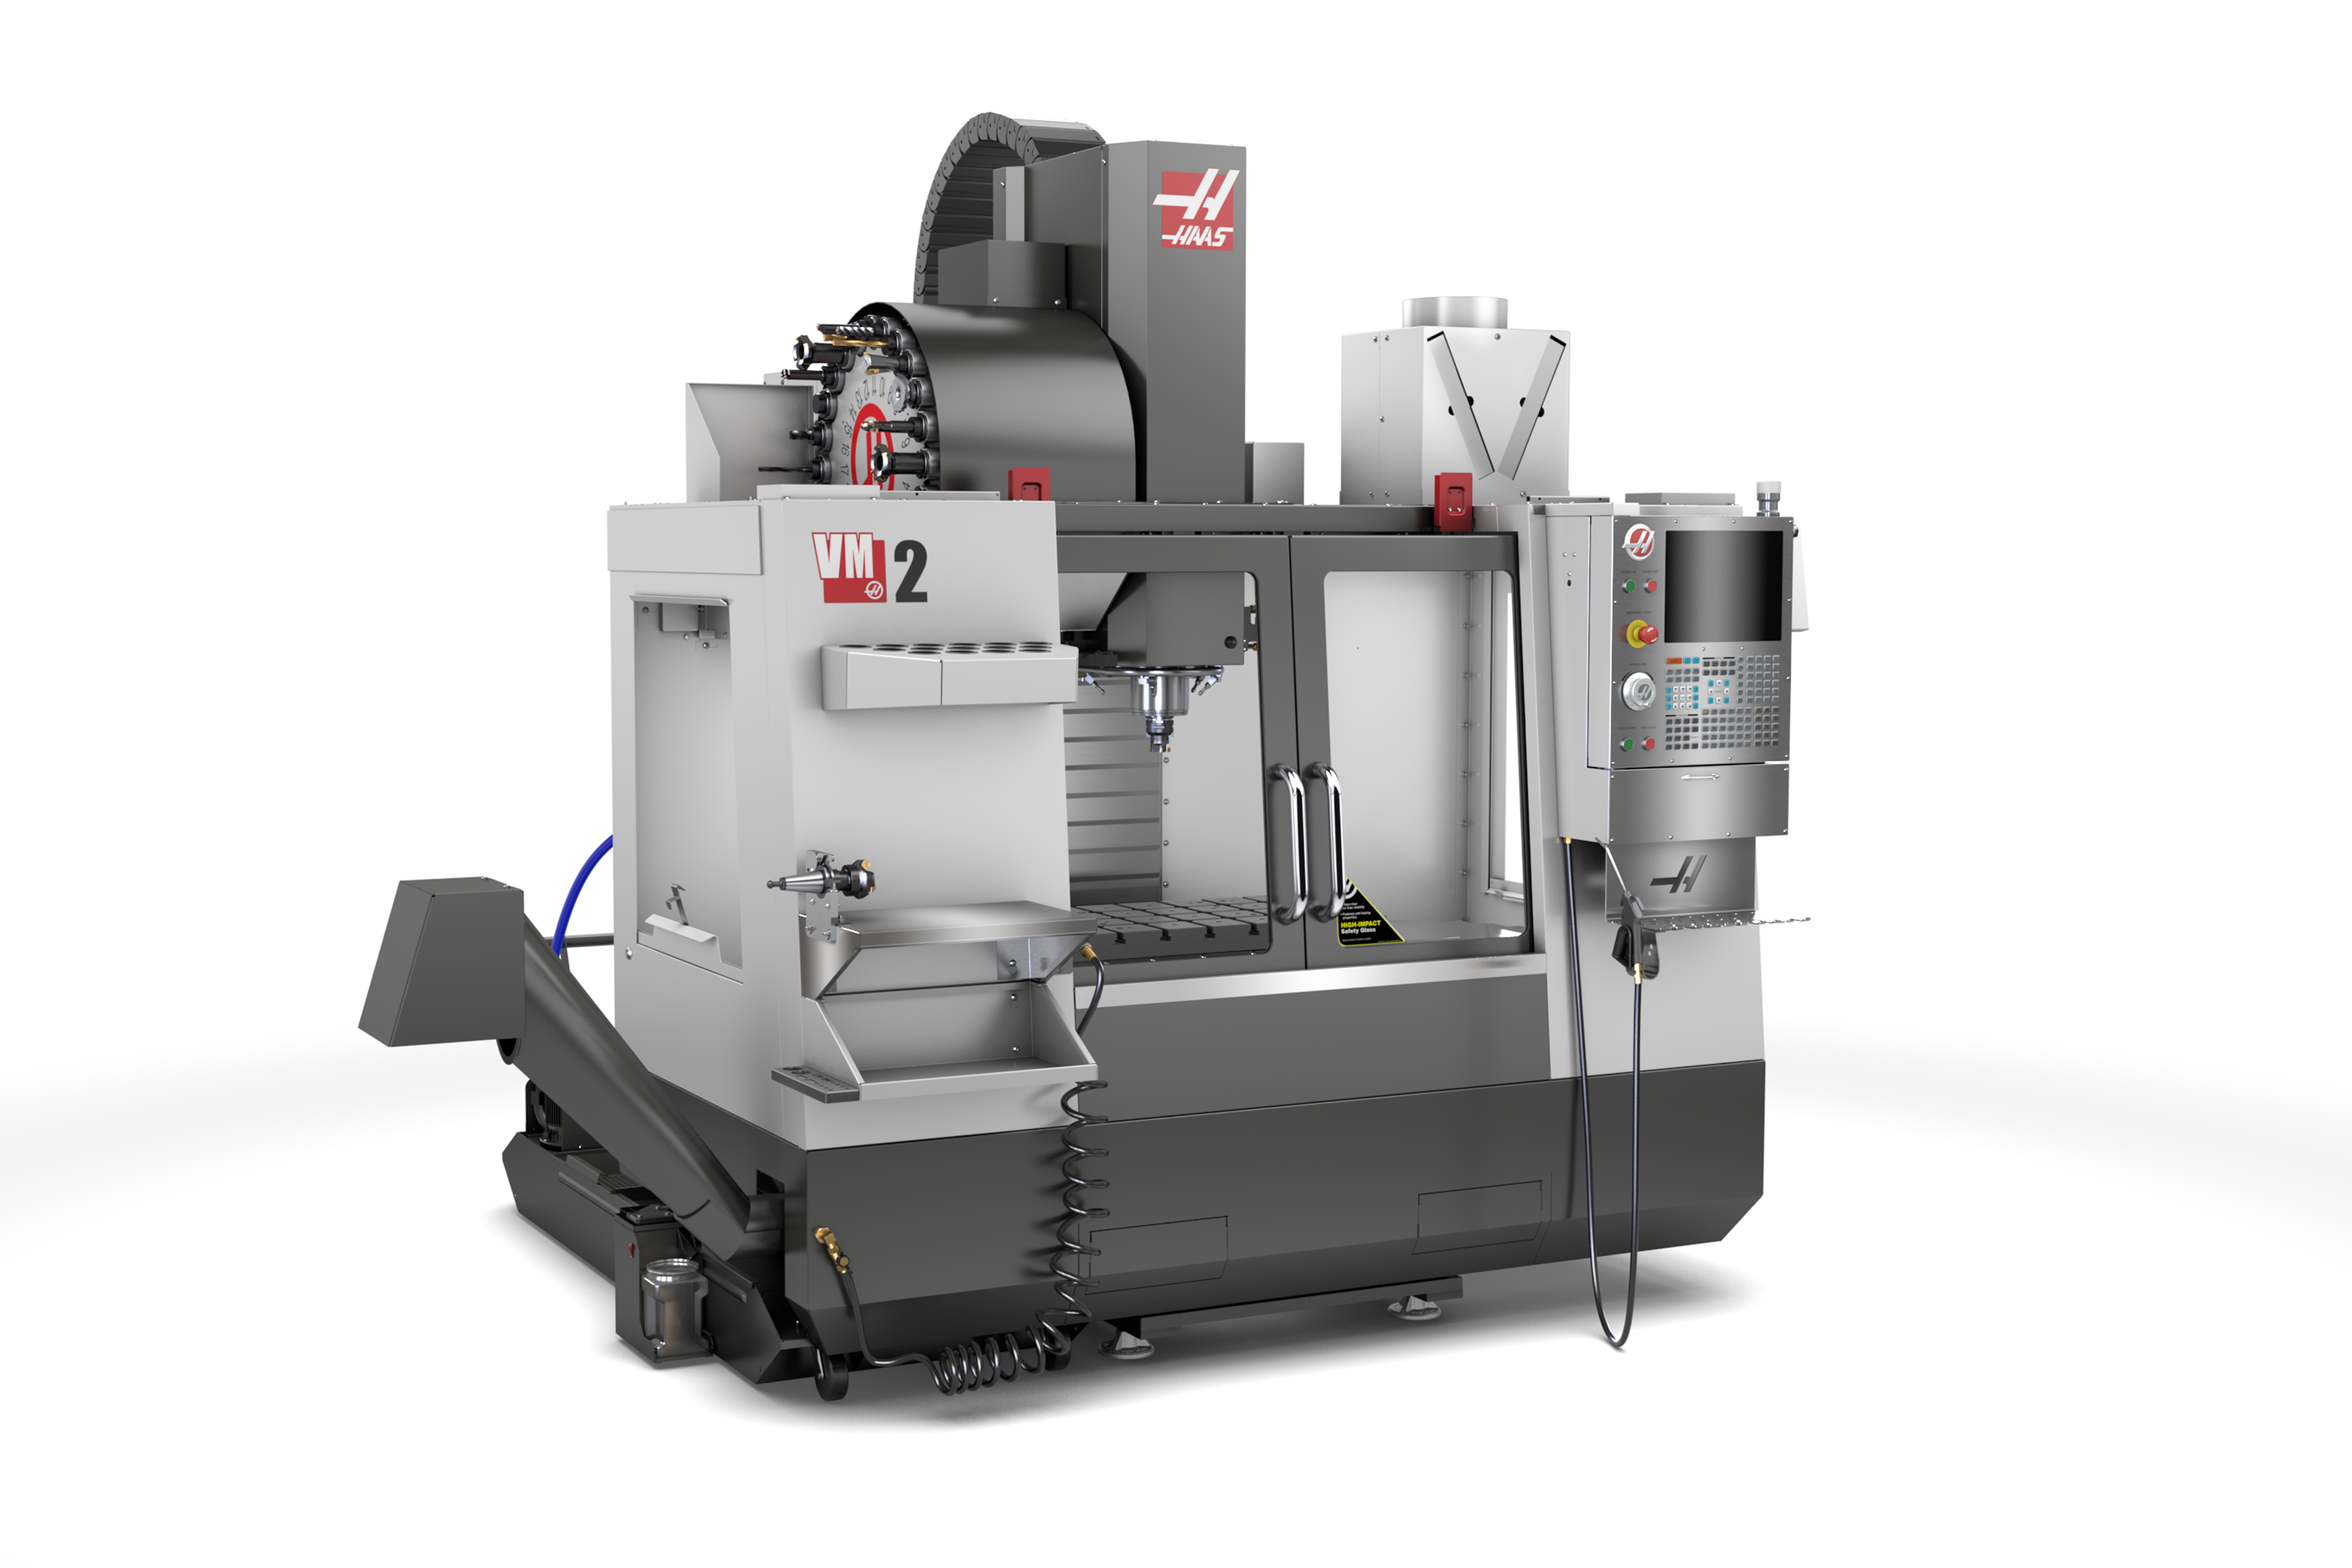 VM-2 | High-Performance VMCs | 40-Taper | Mold Machines